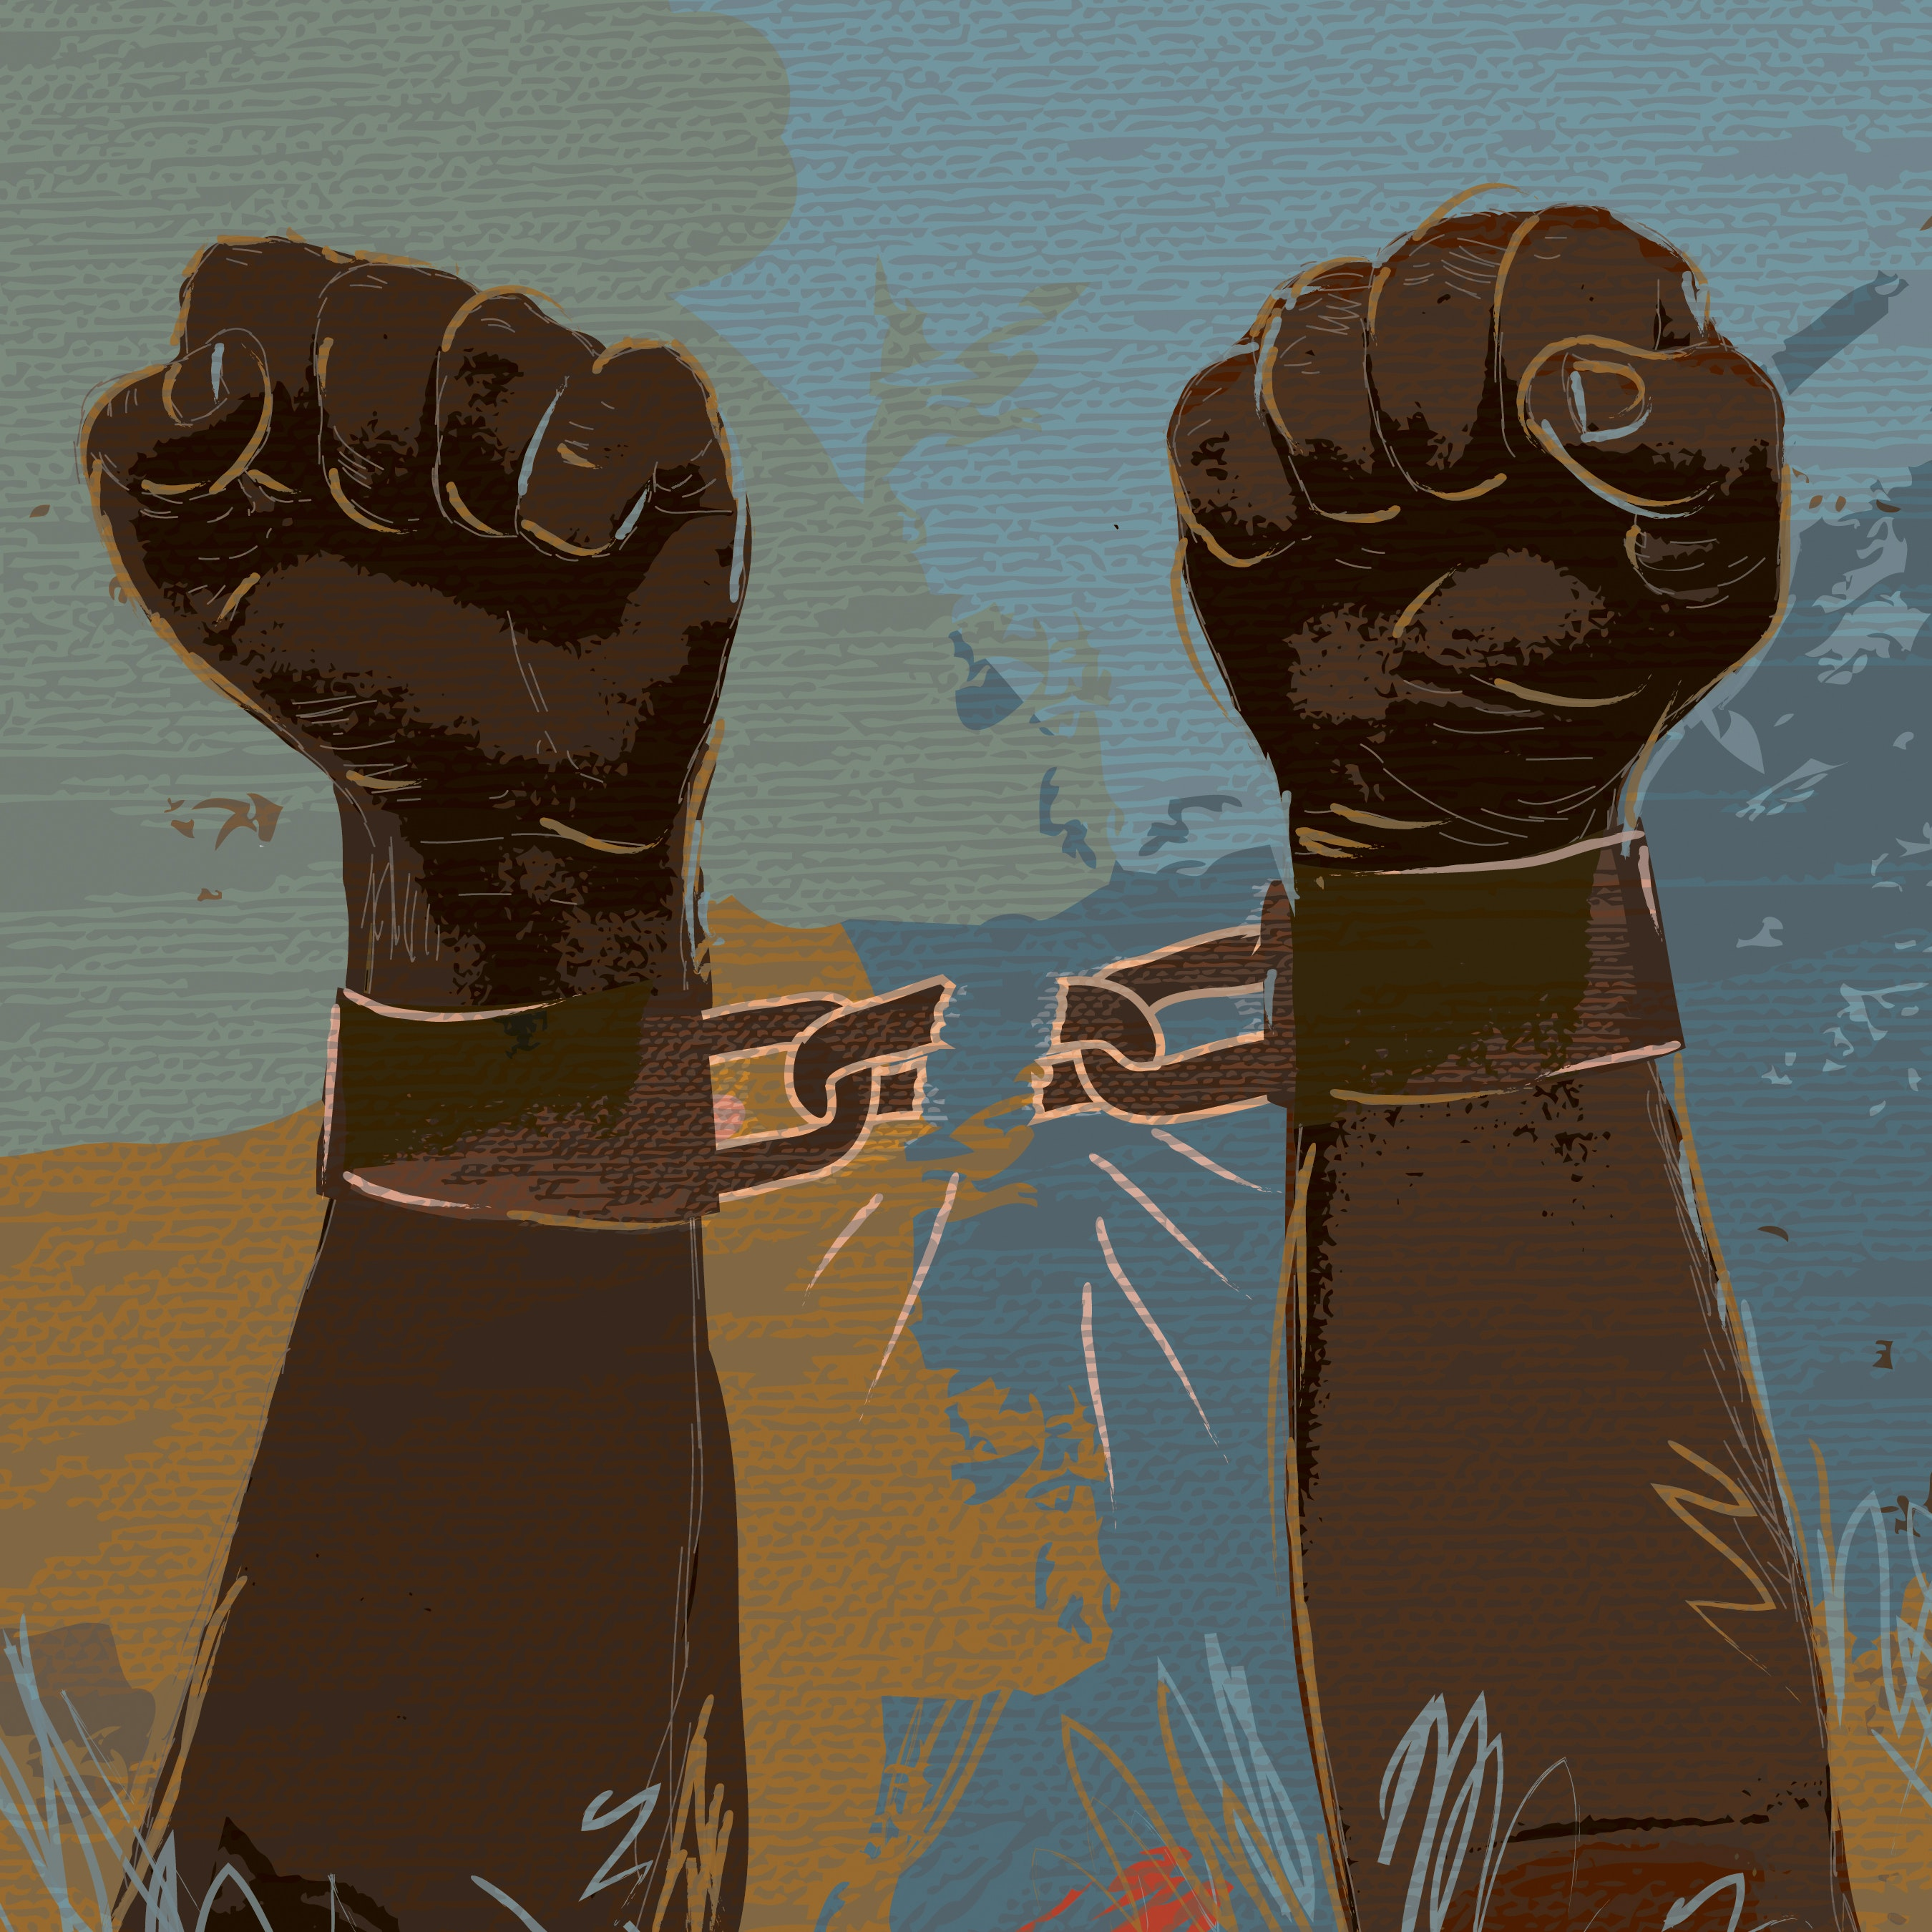 Illustration of two hands in fists breaking free from hand cuffs